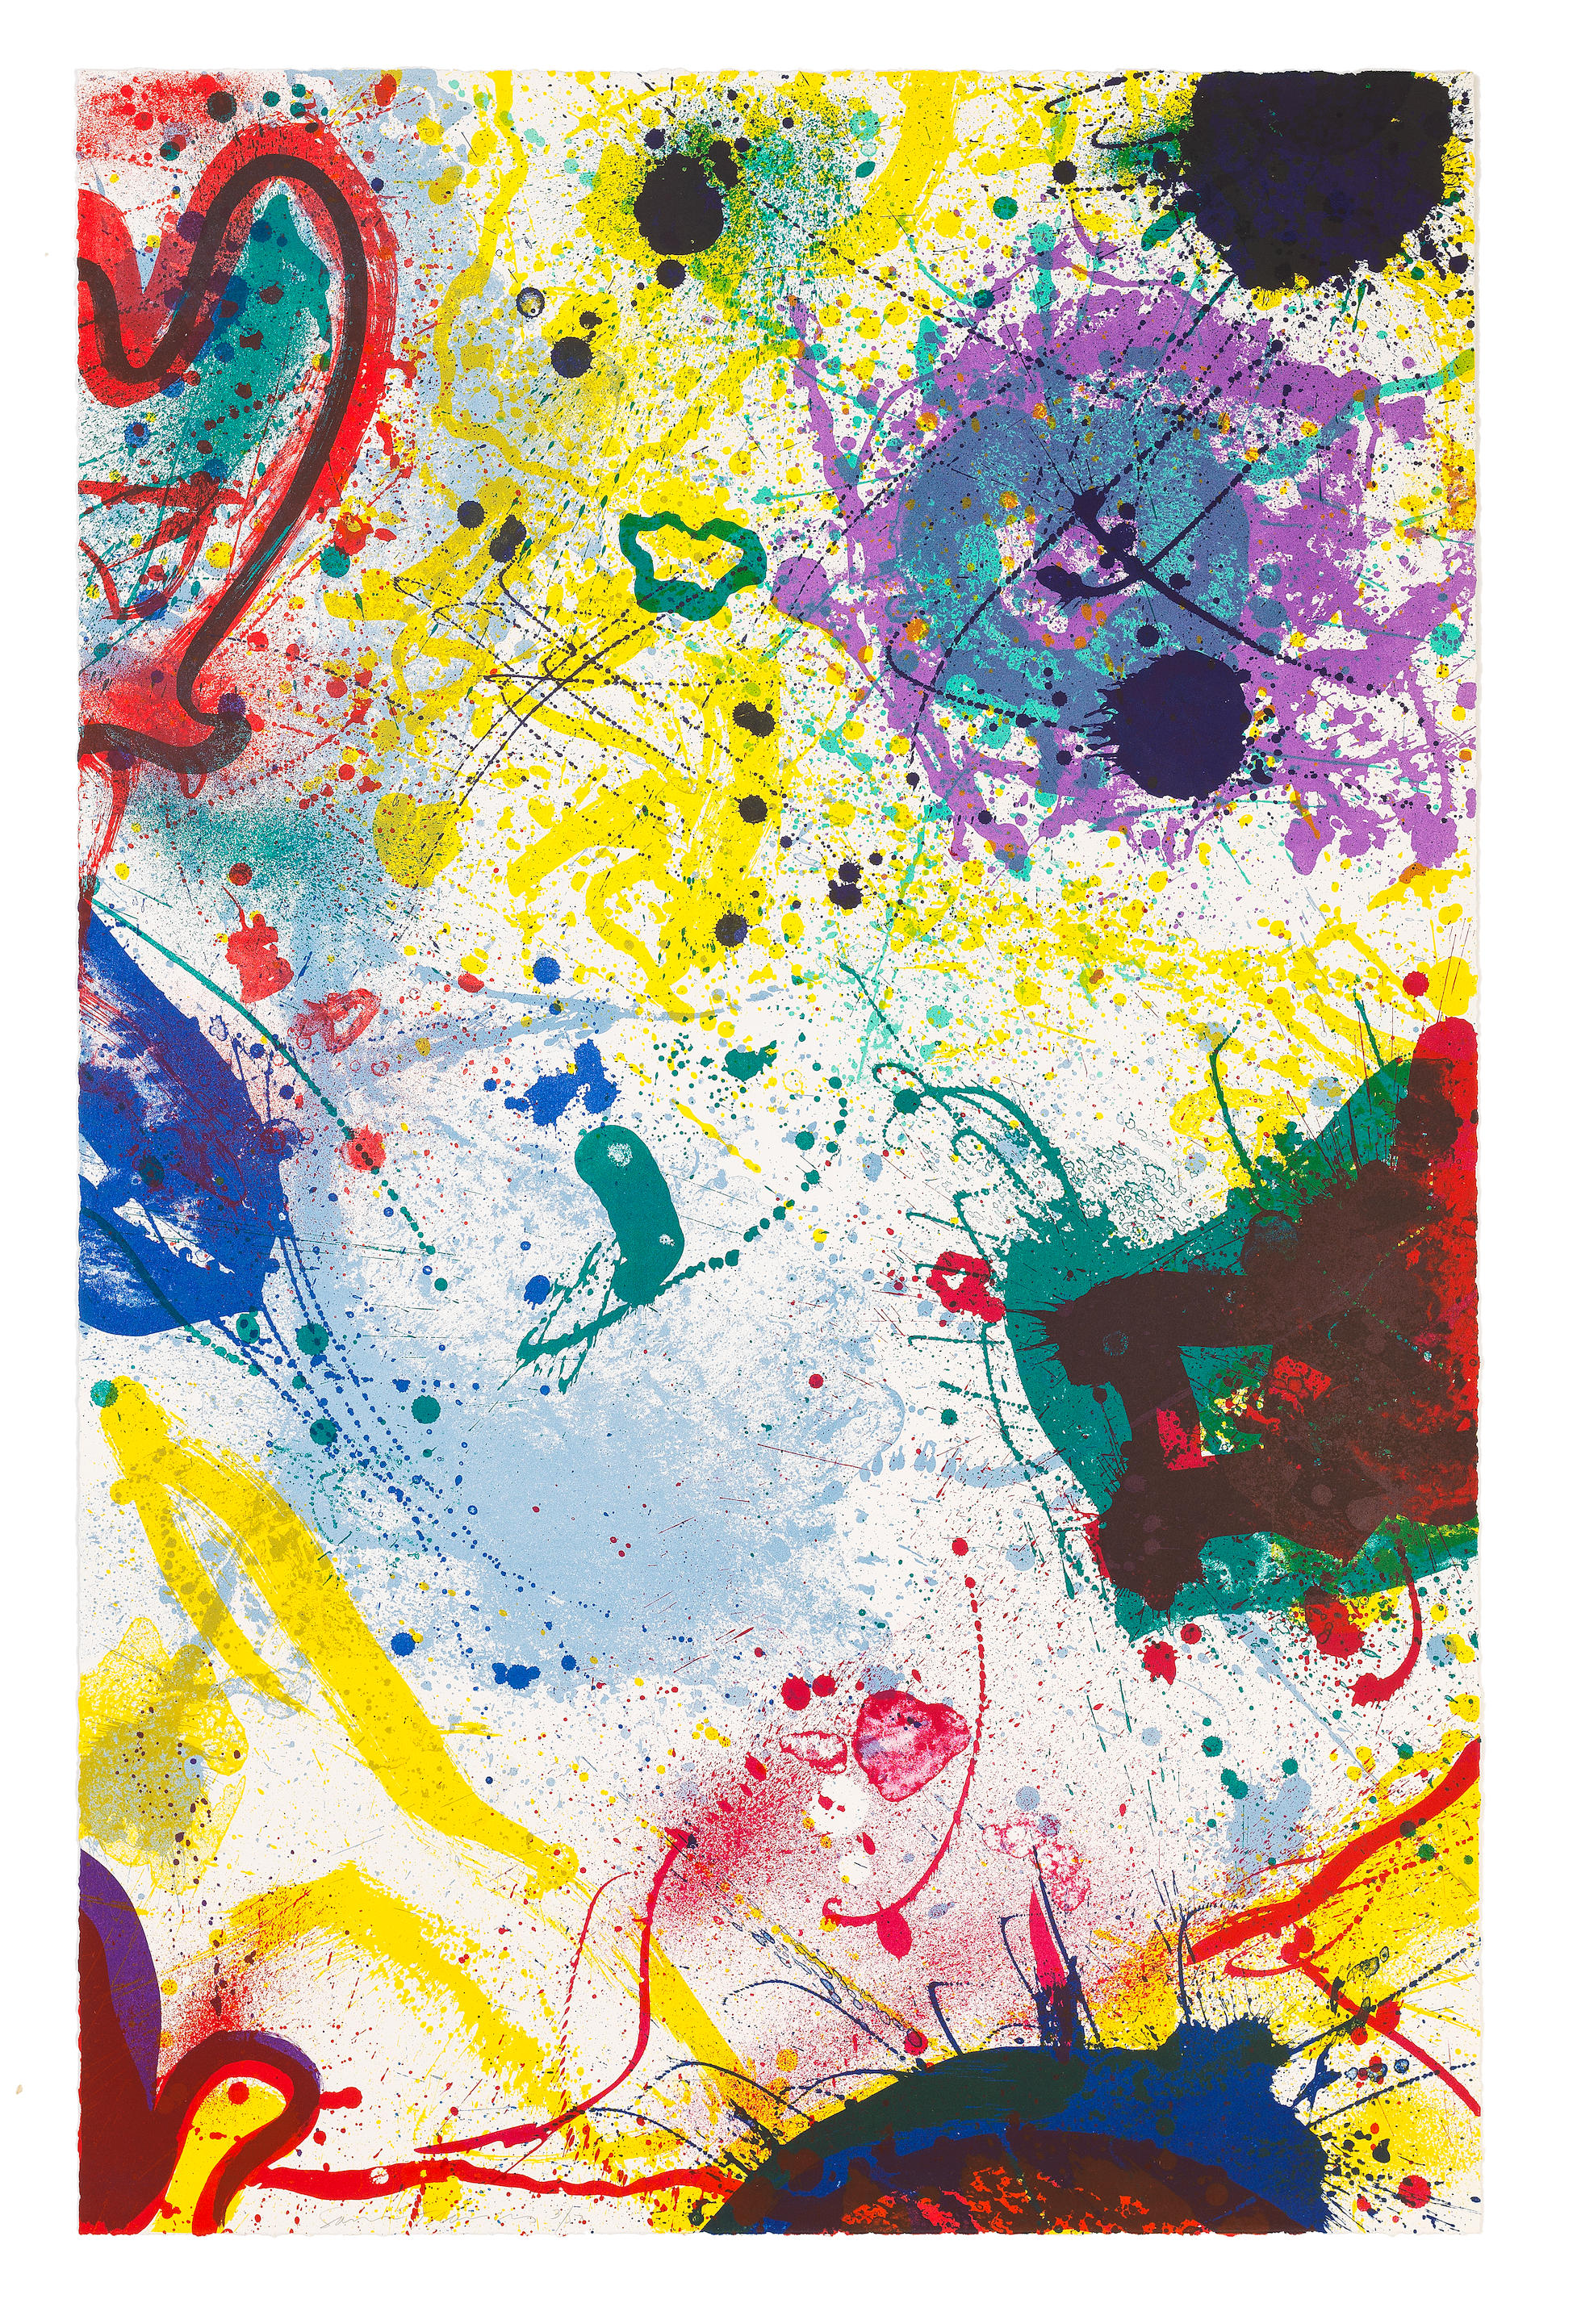 Sam  Francis (1923-1994) Untitled Lithograph in colours, 1991, on wove paper, signed and numbered 3/50 in pencil, published by The Litho Shop Inc., Santa Monica, California  Sheet 1182 x 759mm. (46 1/2 x 29 7/8in.)